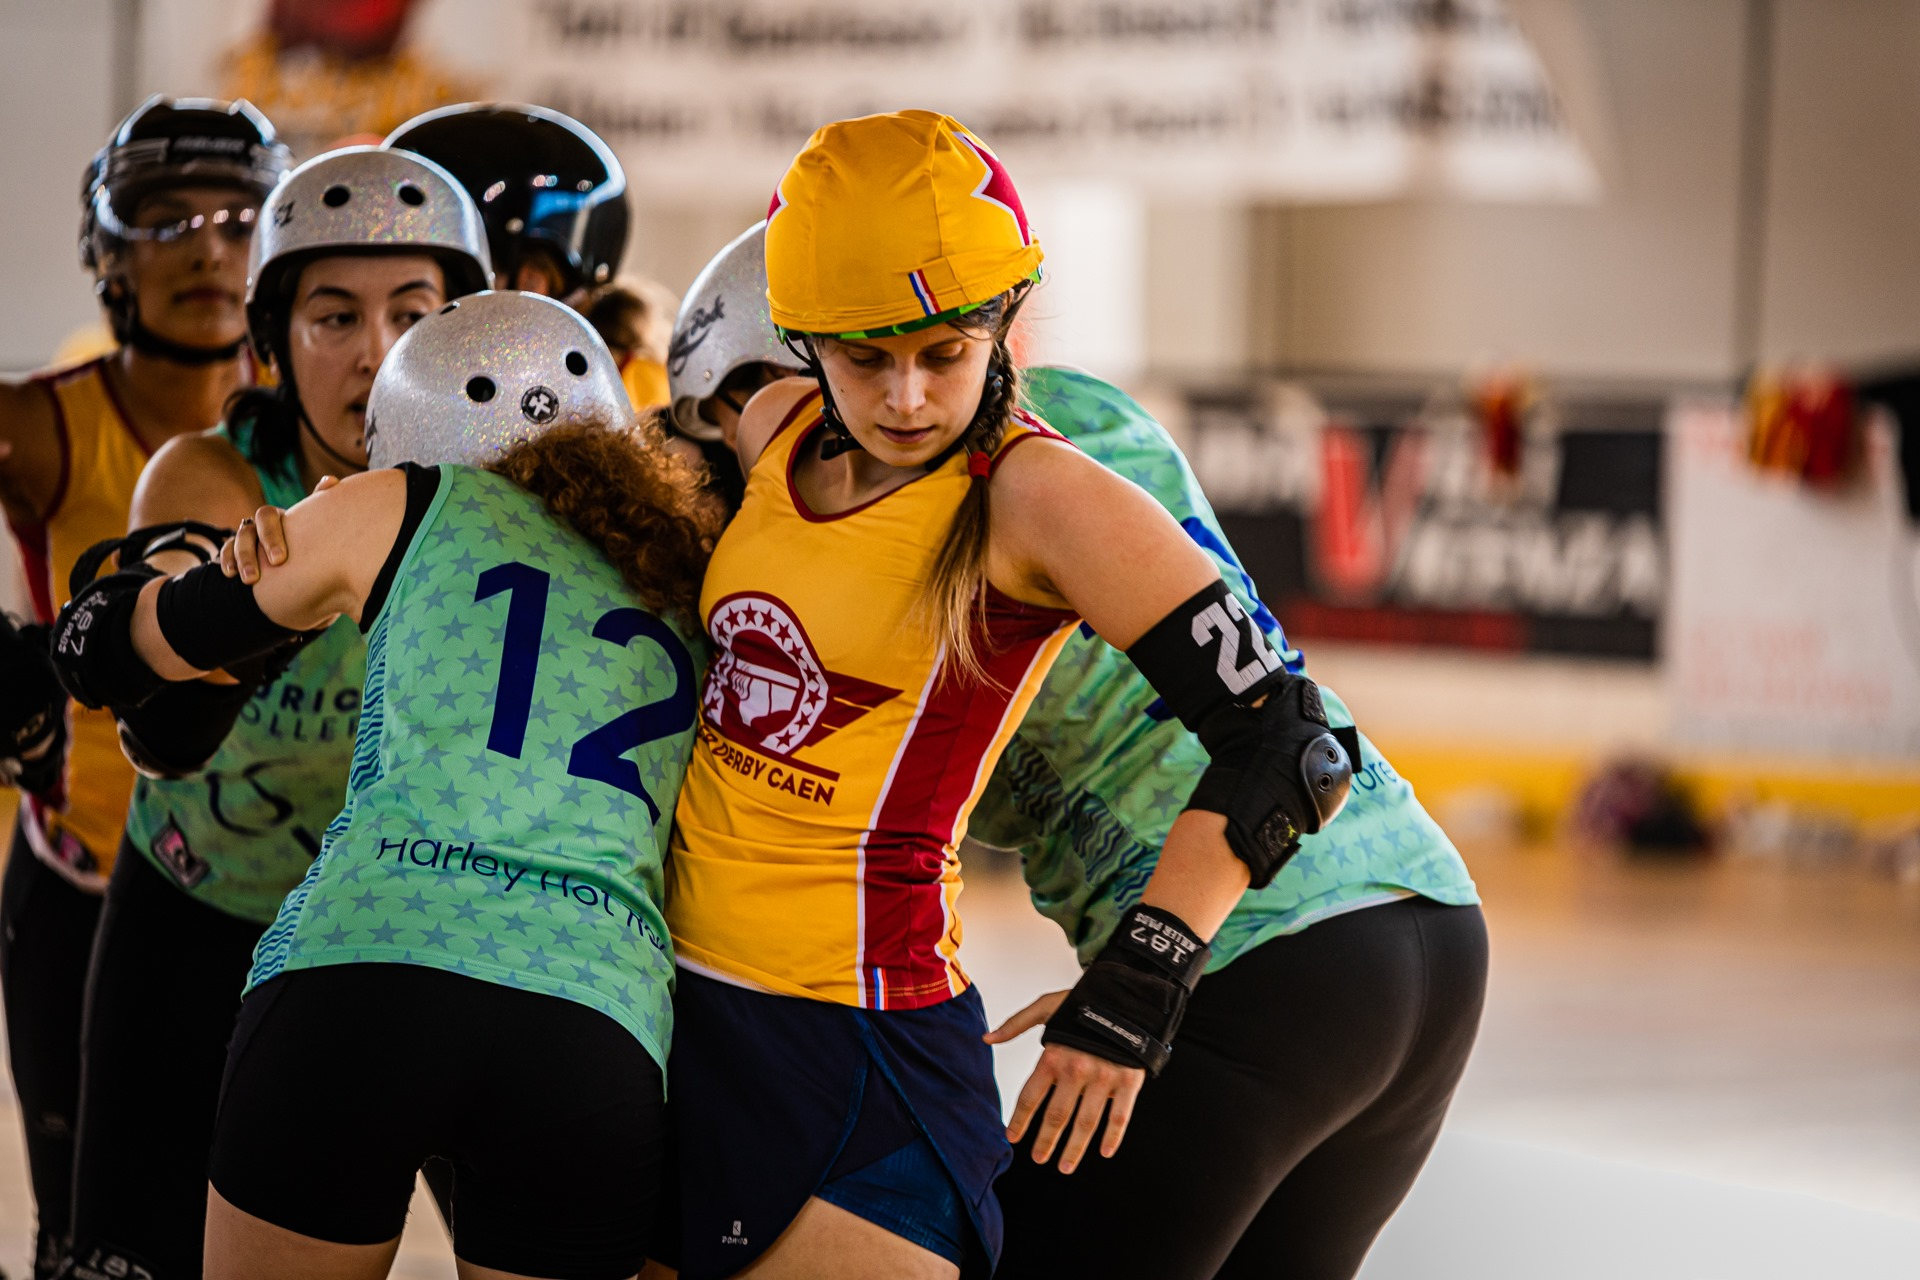 Roller Vicenza Derby stage of the game